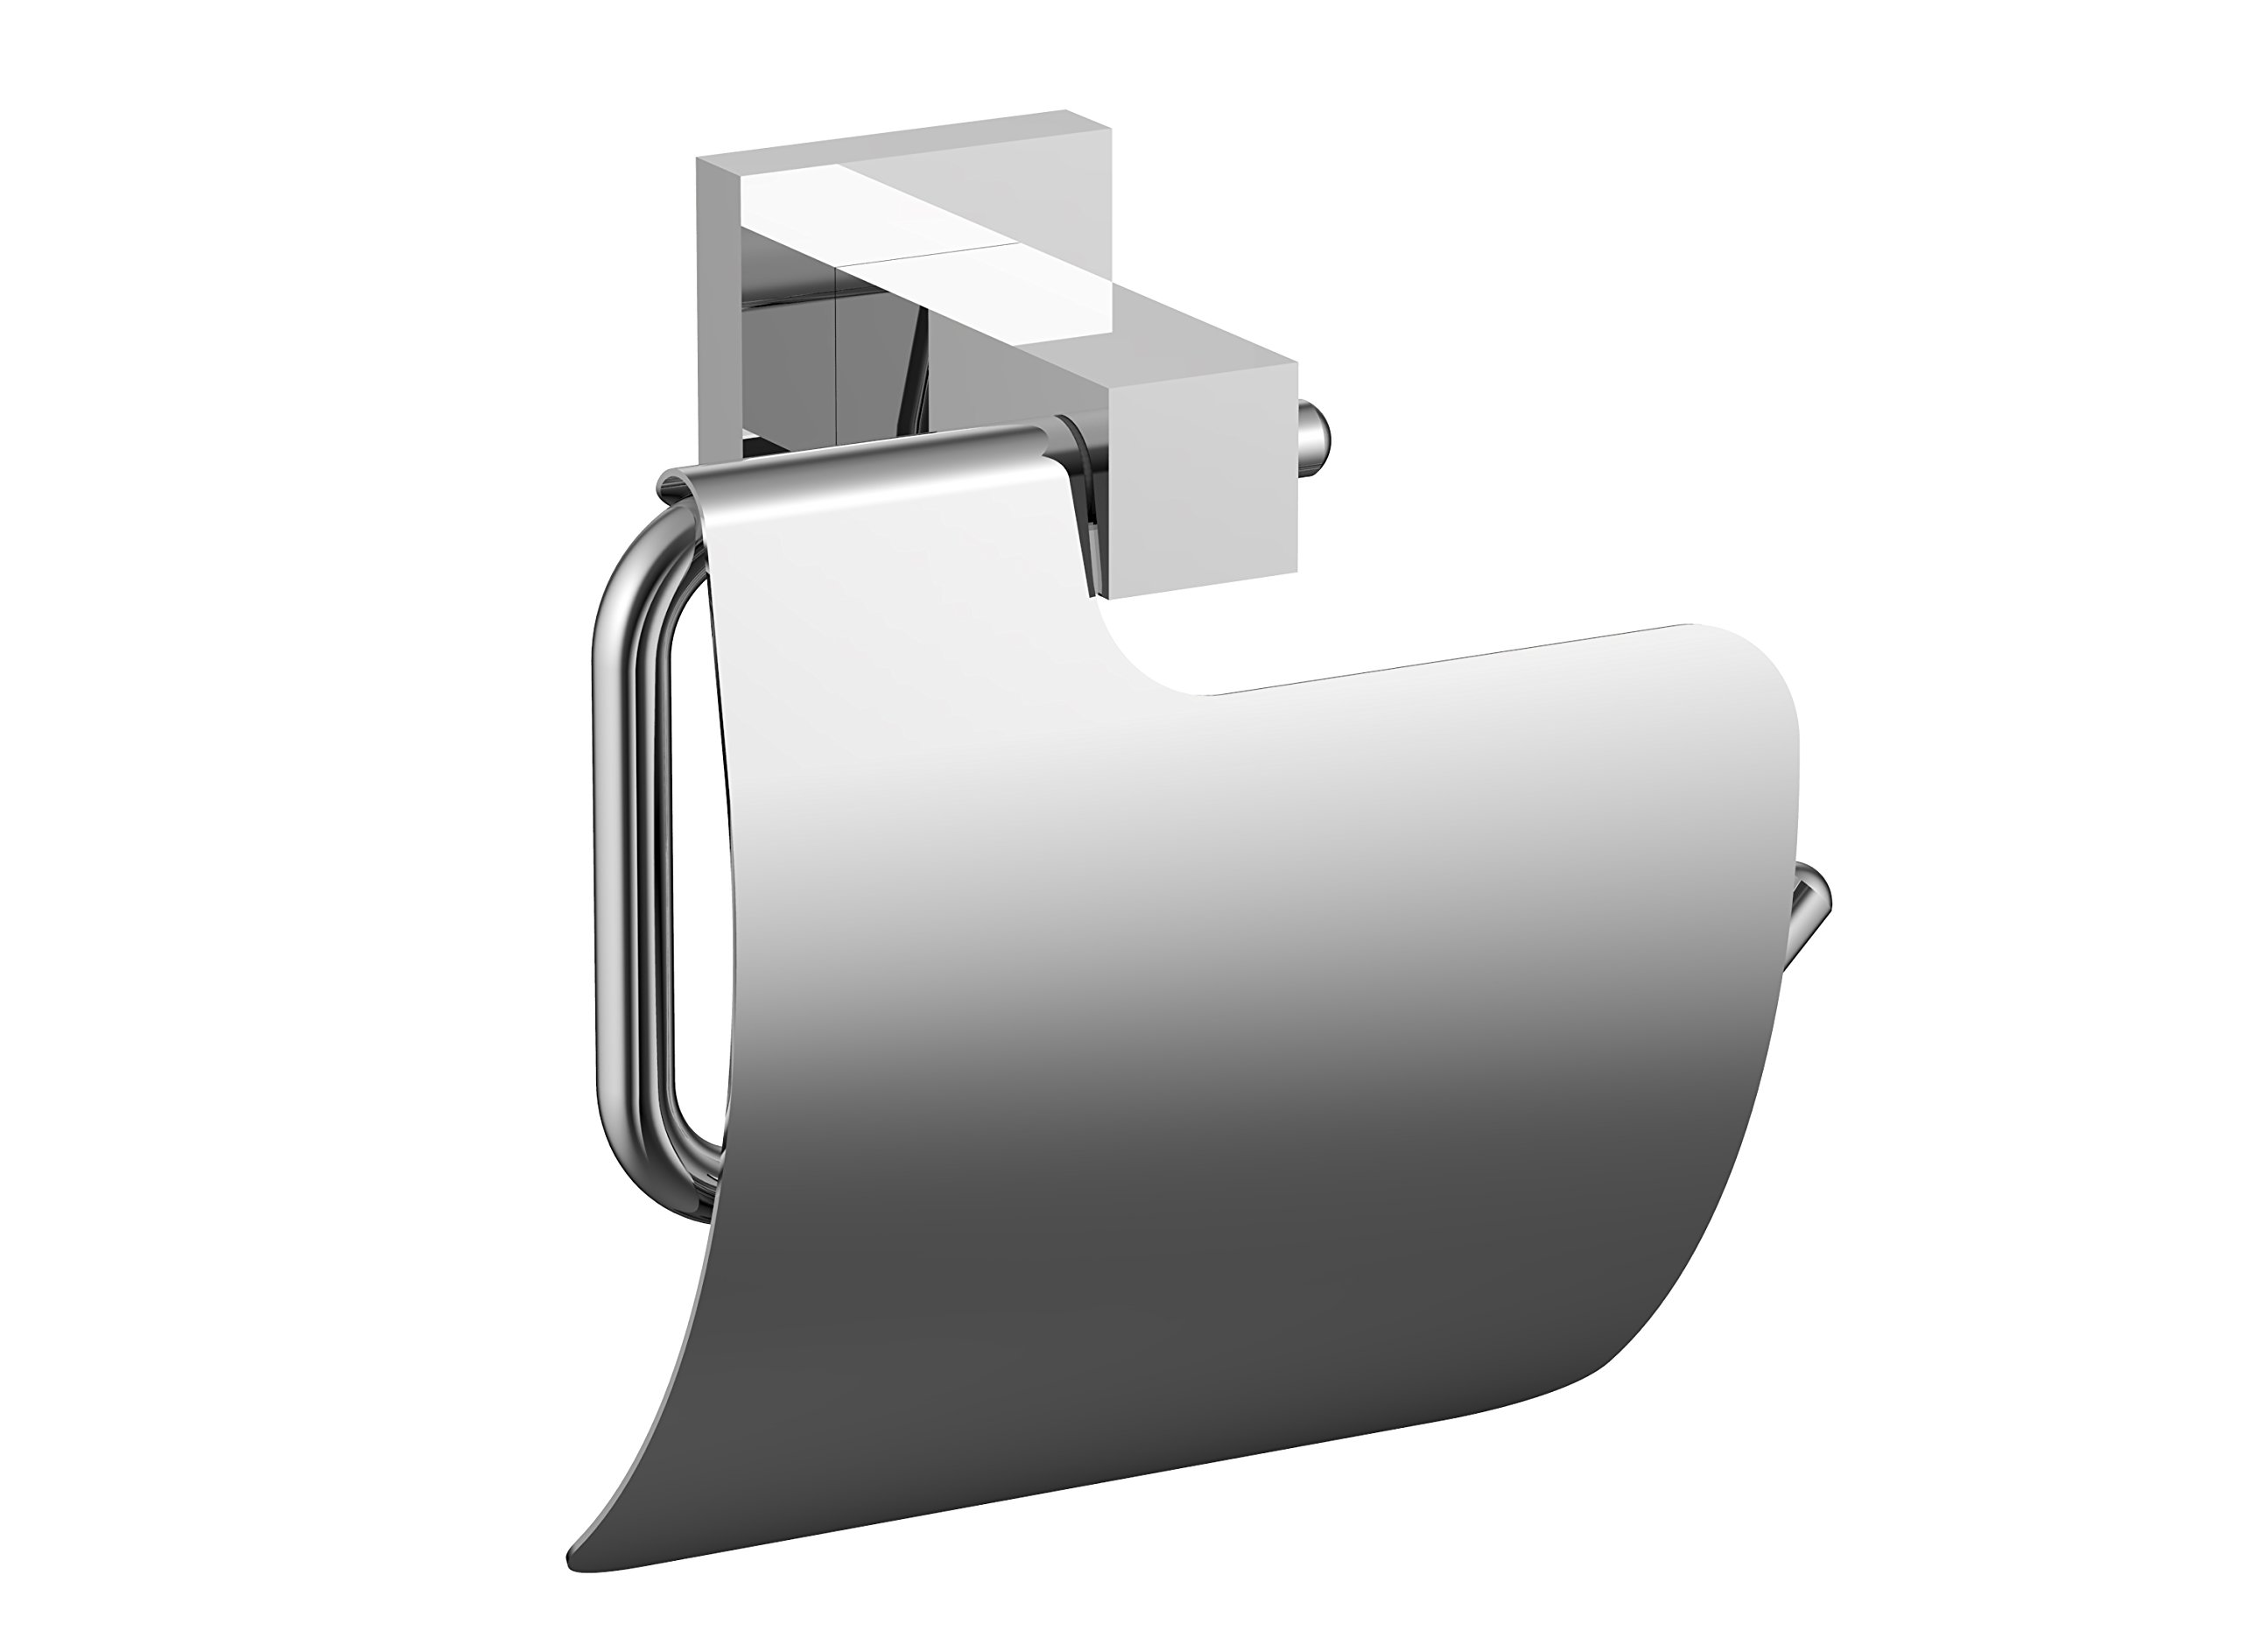 Eviva Evac62Ch Toilet Paper Holdy Toilet Paper Holder (Chrome) Bathroom Accessories Combination